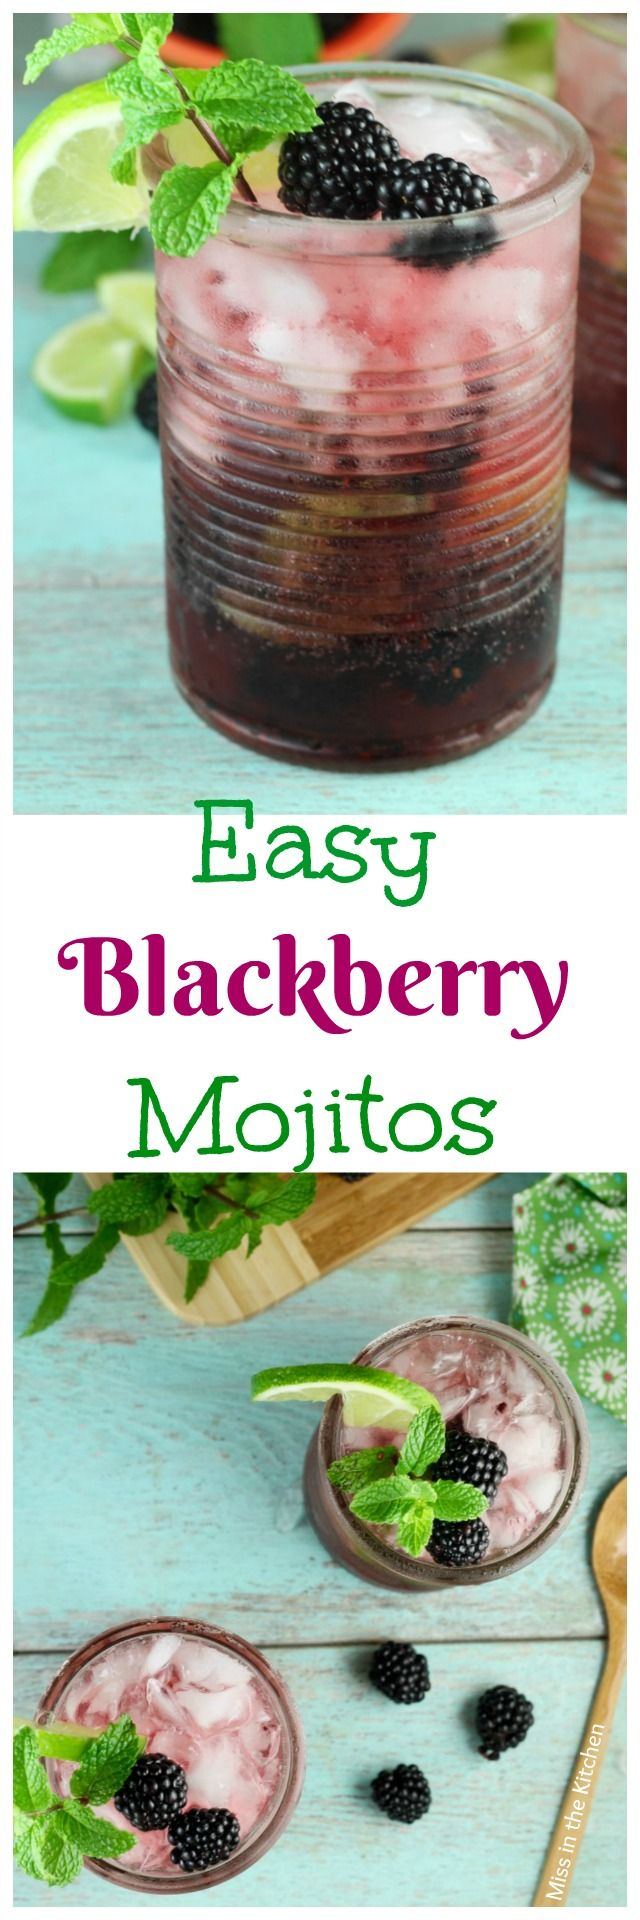 Easy Blackberry Mojitos Recipe ~ A refreshing and delicious summer cocktail! From MissintheKitchen.com #ad #SayYesToSummer #JustAdd7UP